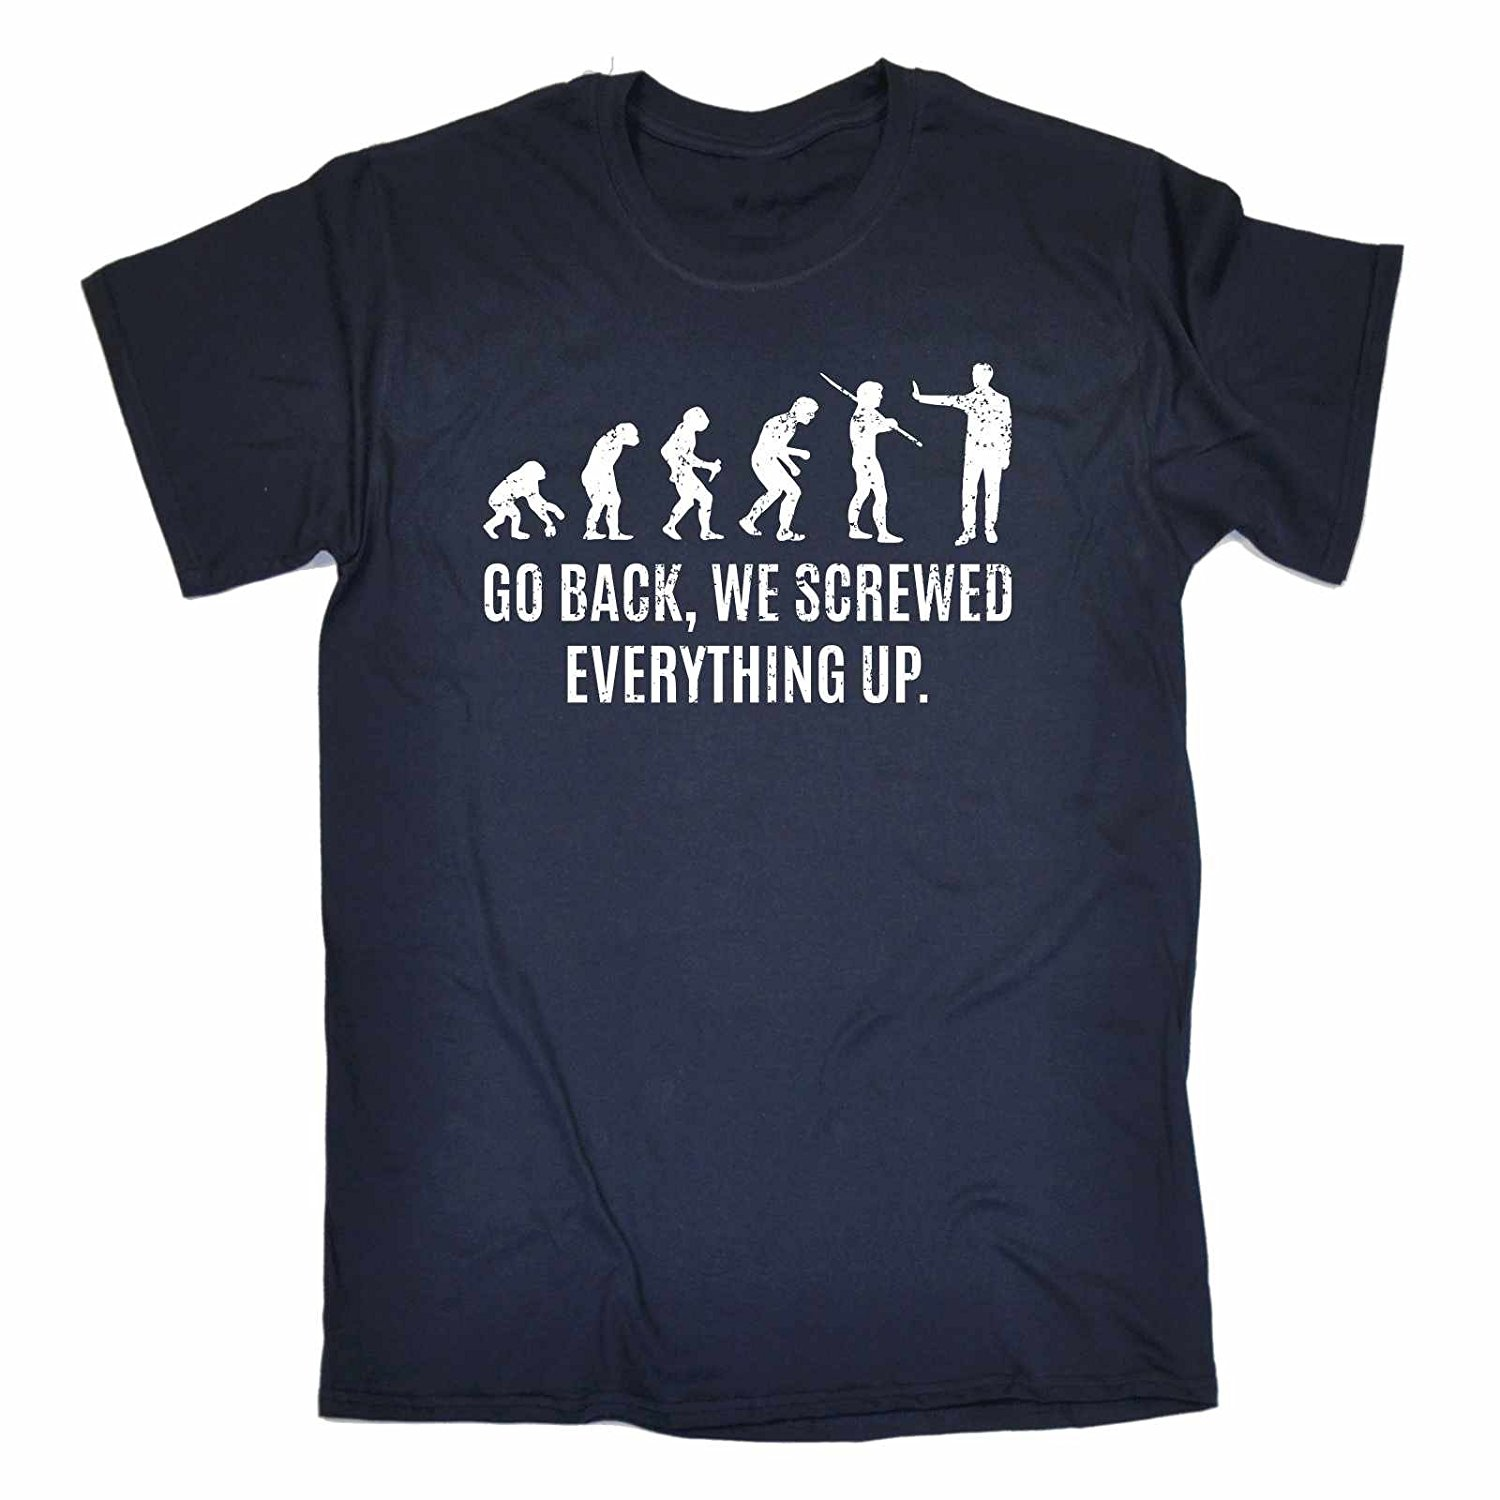 Slogans Mens GO BACK WE SCREWED EVERYTHING UP LOOSE FIT T-SHIRT ...